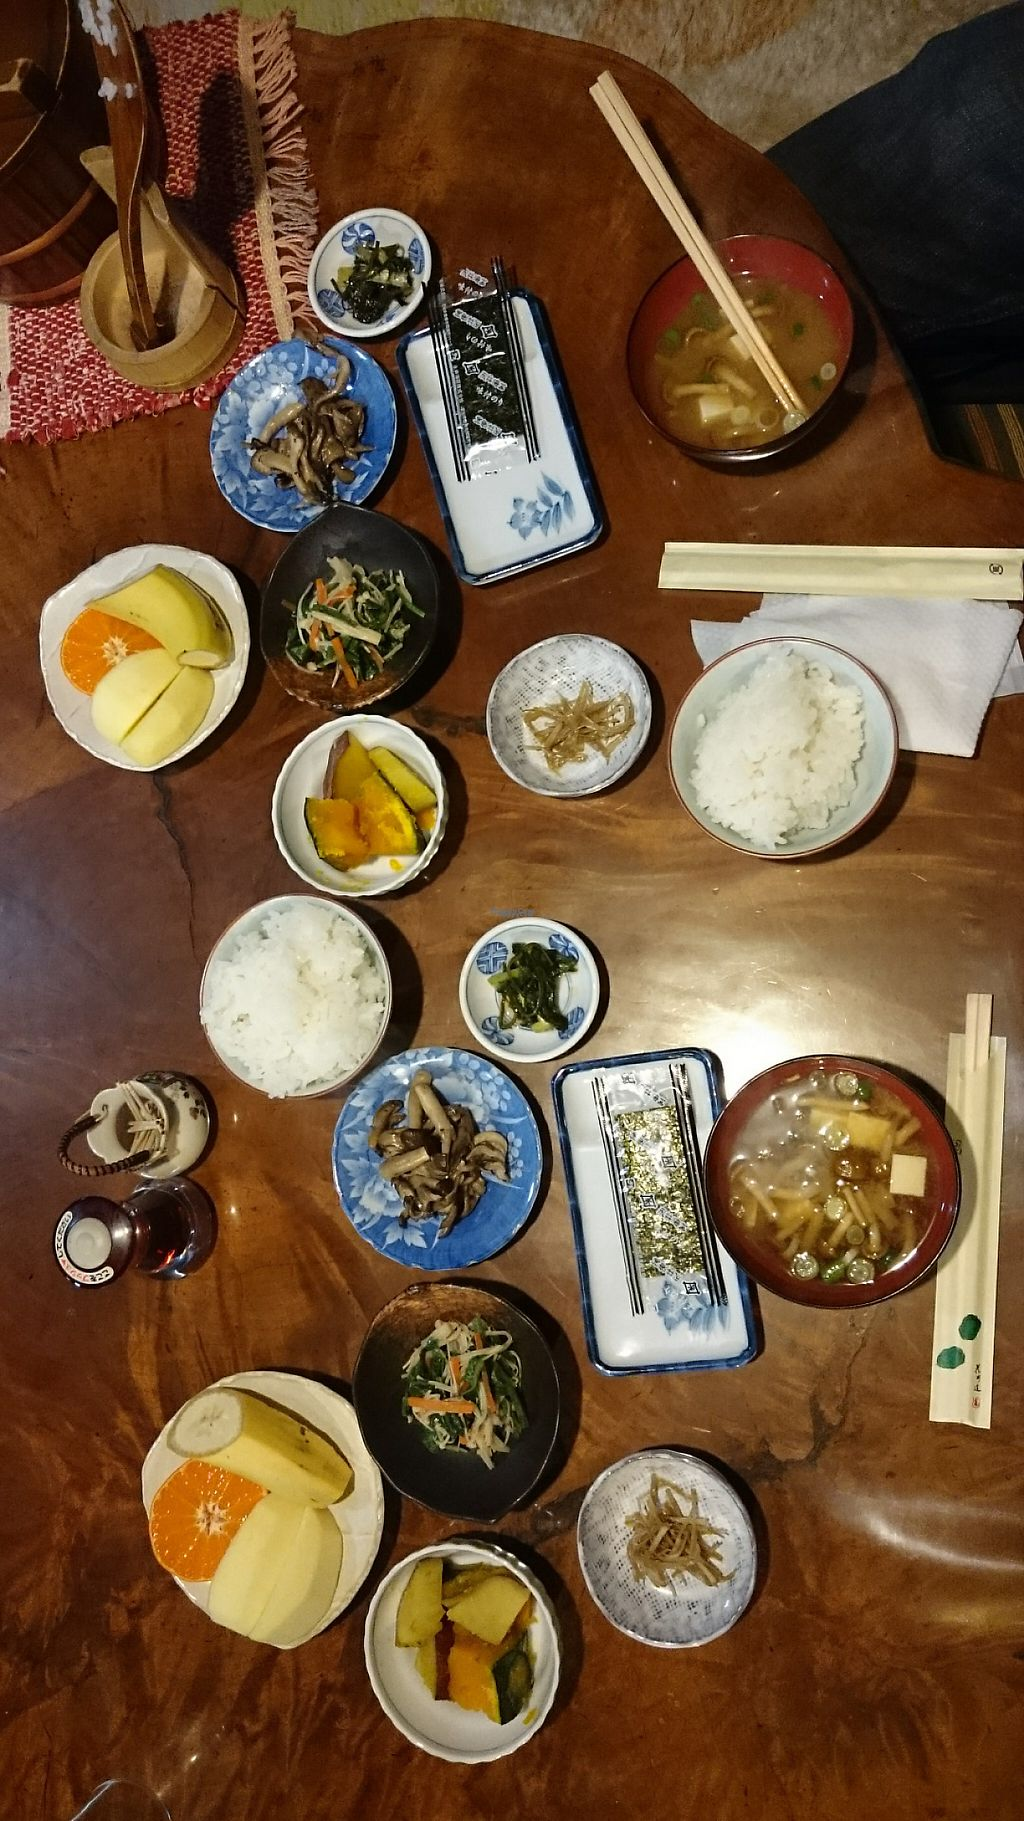 "Photo of Koshinzuka  by <a href=""/members/profile/Shauna333"">Shauna333</a> <br/>Vegan breakfast for two <br/> April 9, 2017  - <a href='/contact/abuse/image/89632/246048'>Report</a>"